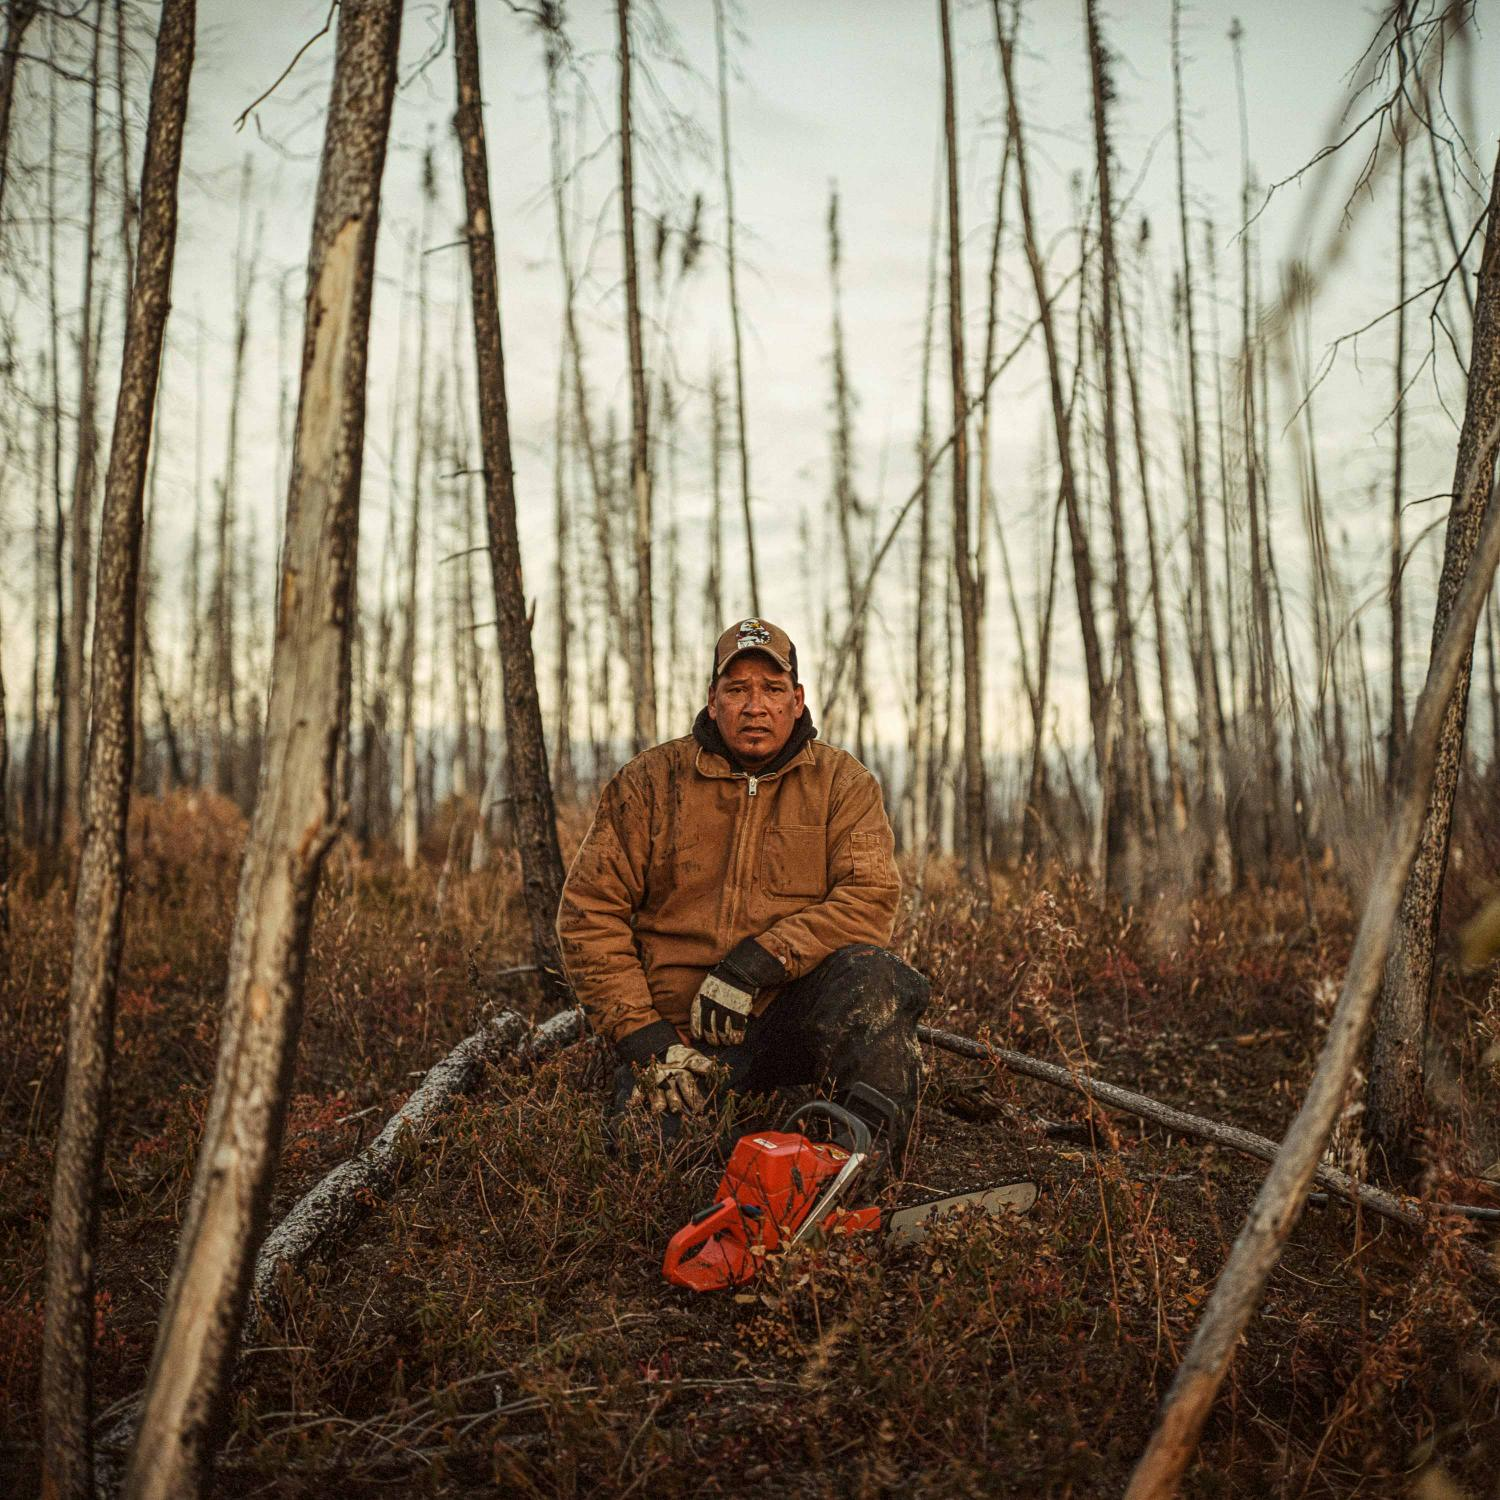 September 26, 2018. Robert Spence rests while cutting firewood near his trapline on the Churchill River, where he takes his family to hunt moose each fall in Northern Manitoba Canada. Spence is an elected Councillor the Tataskweyak Cree Nation known as the community of Split Lake, he once provided for his family as a commercial fisherman and fur trapper, but left the profession after the fishery became unprofitable due to declining stock and quality due to the impact of hydro dams on the river. Spence has long been a critic of Manitoba Hydro and decries their impact to his traditional land and waters, and as a Councillor works closely with them in an effort to mitigate further impacts to the land, river and community.